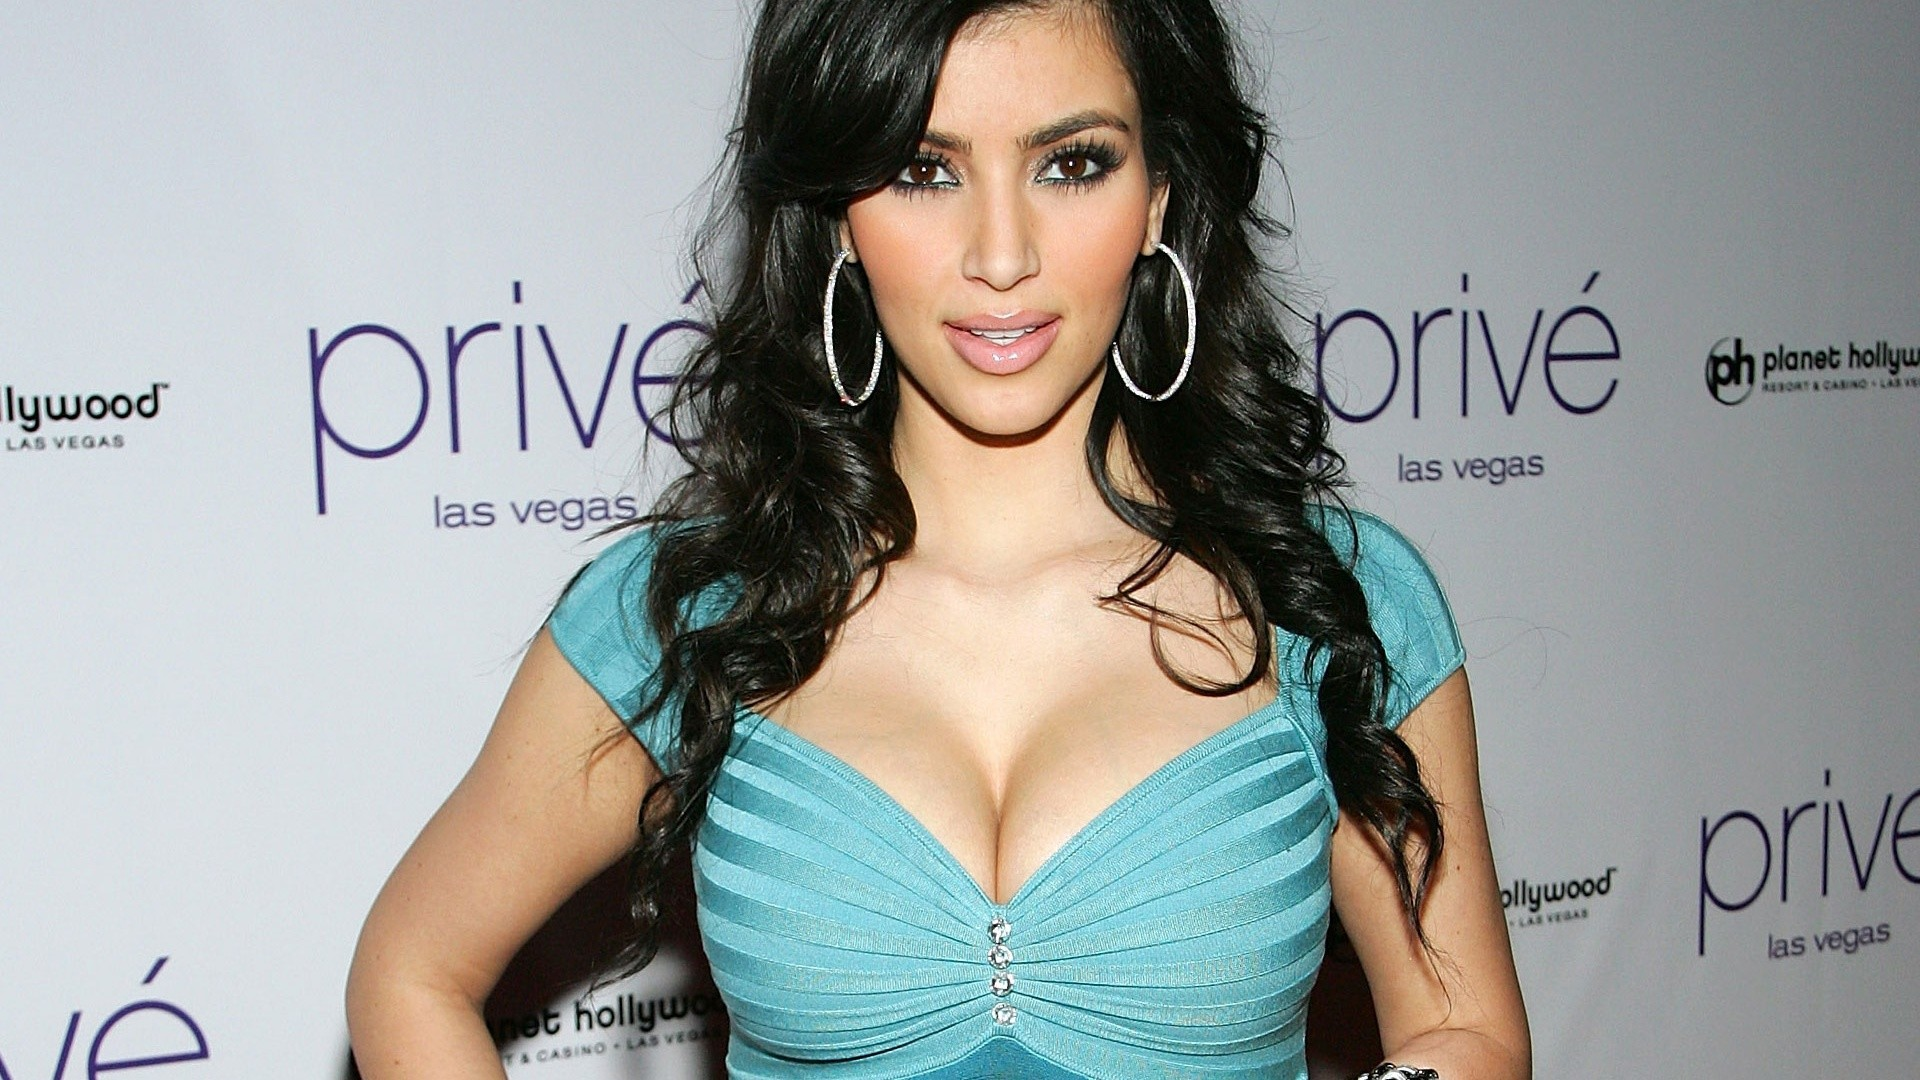 Kim kardashian nude hd wallpaper